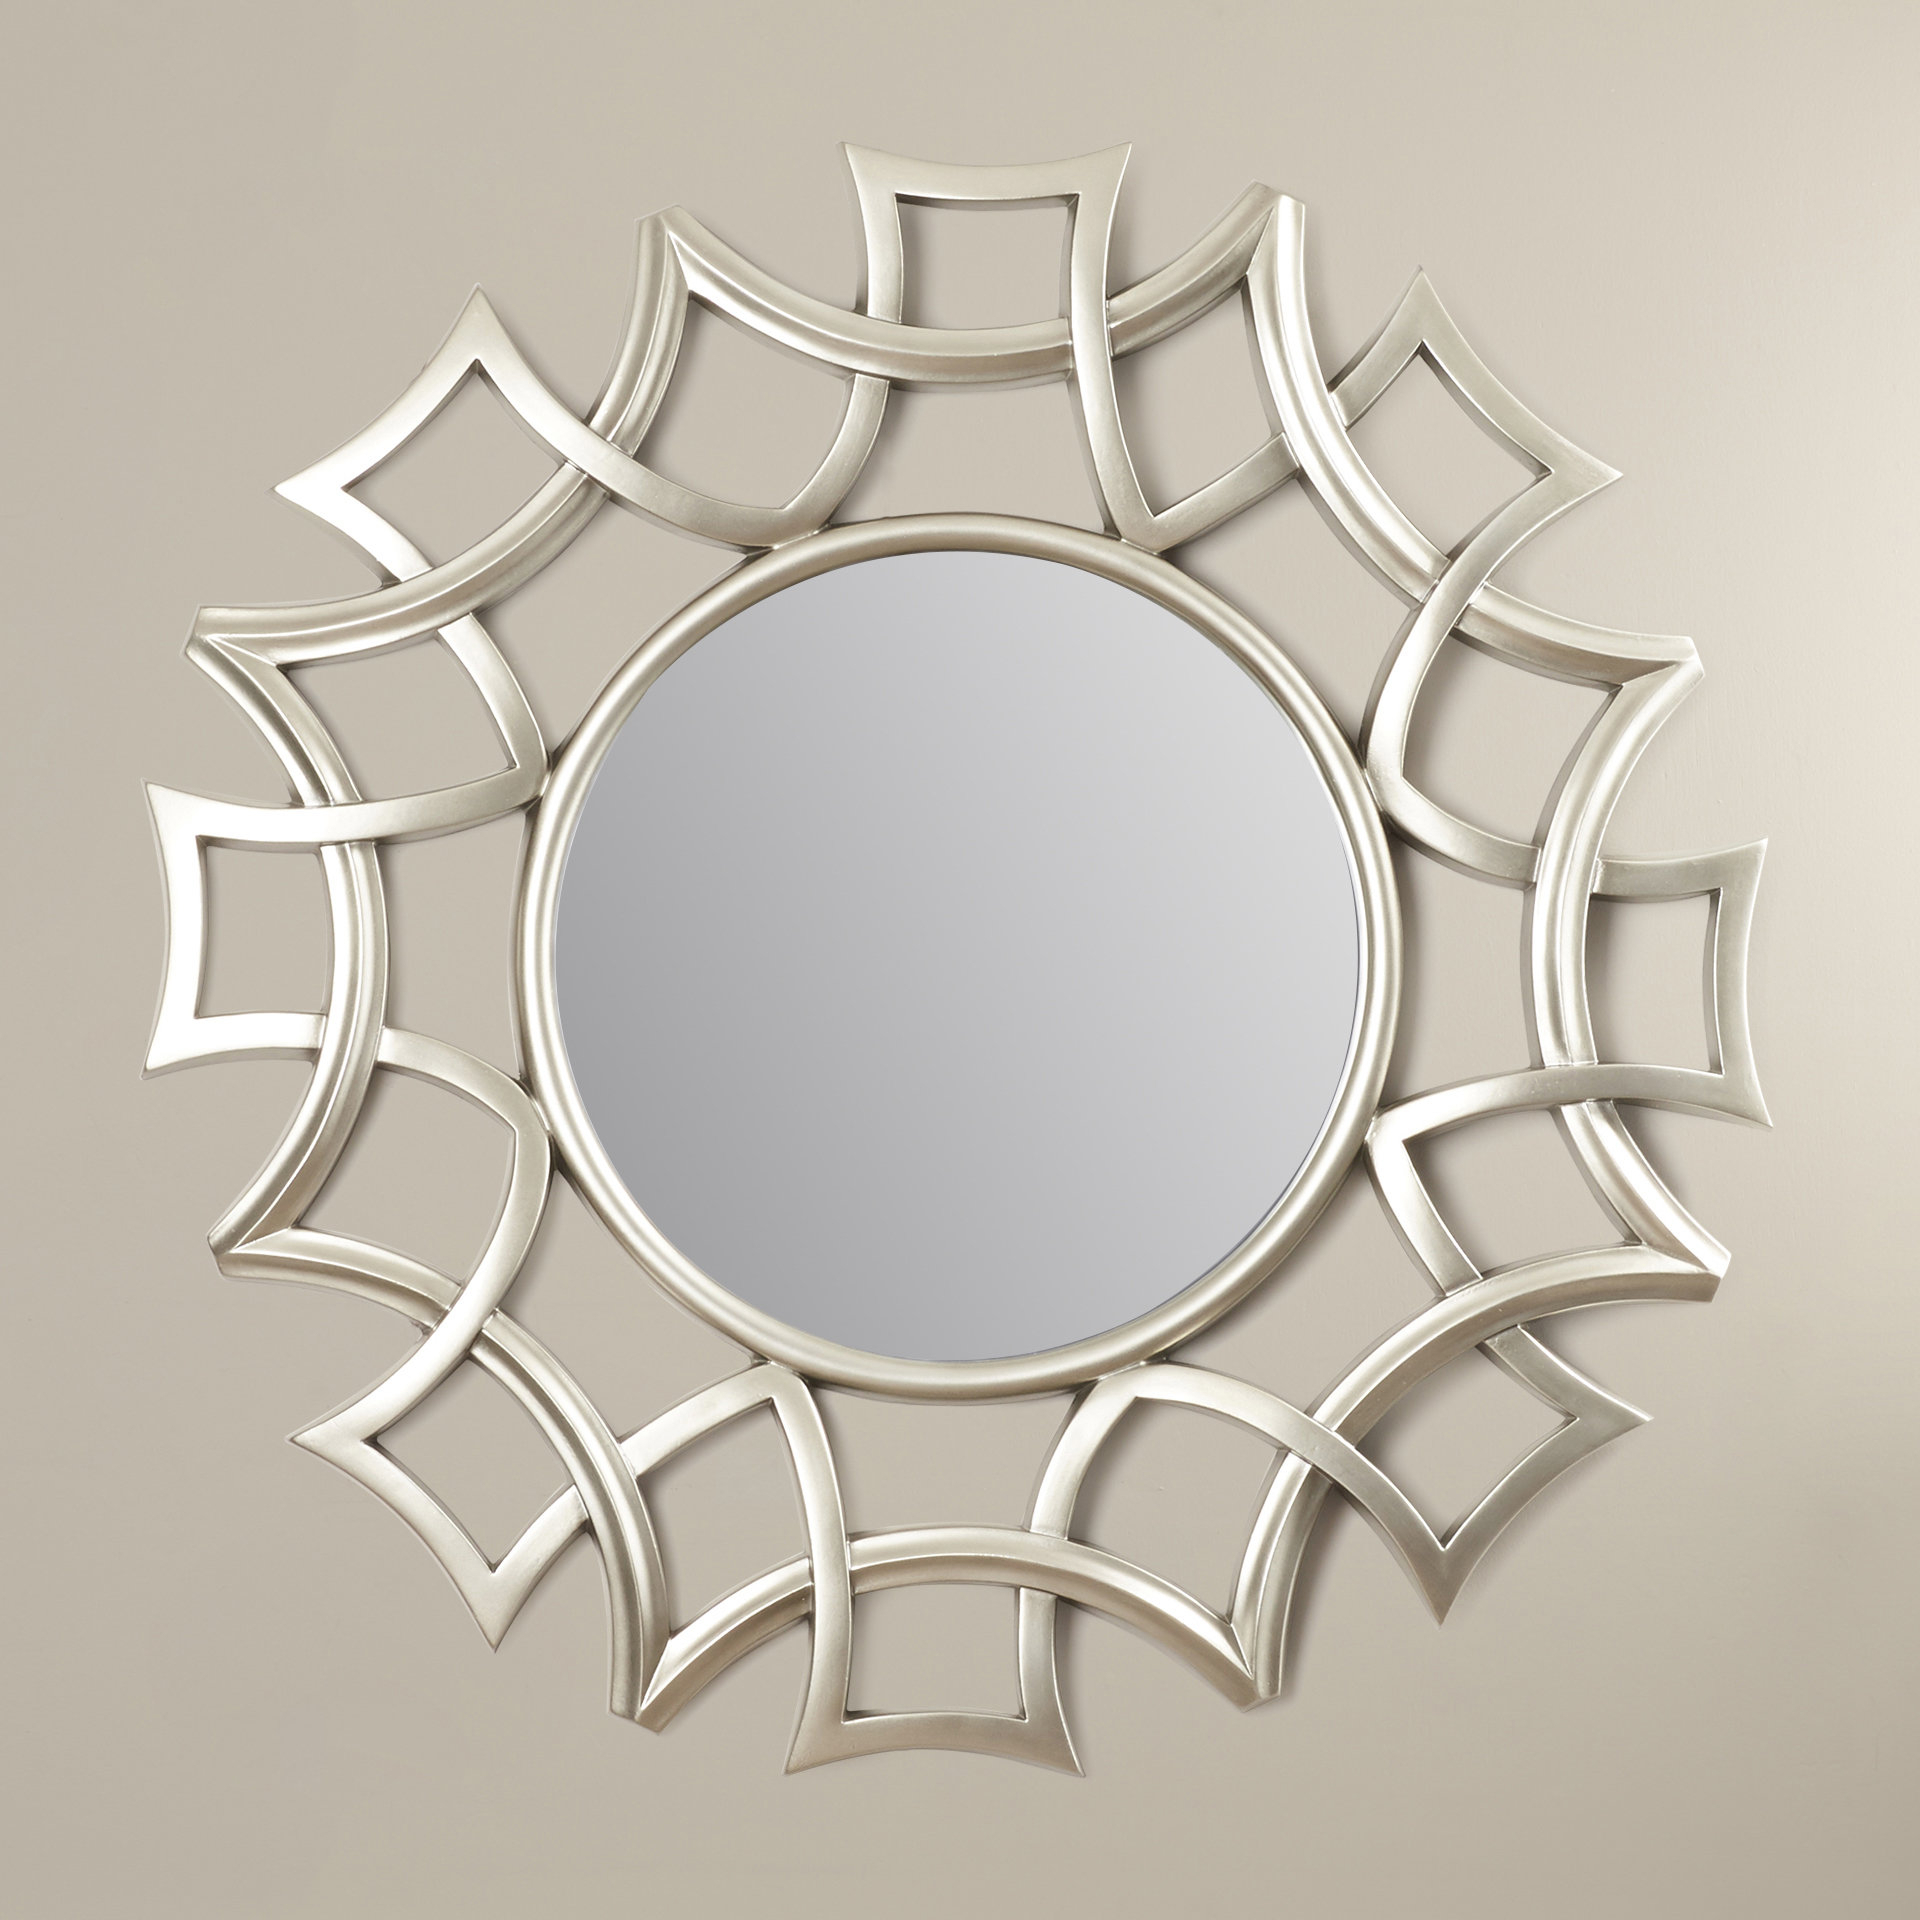 Sunburst Wall Mirrors You'll Love In 2019 | Wayfair Intended For Brylee Traditional Sunburst Mirrors (View 3 of 20)